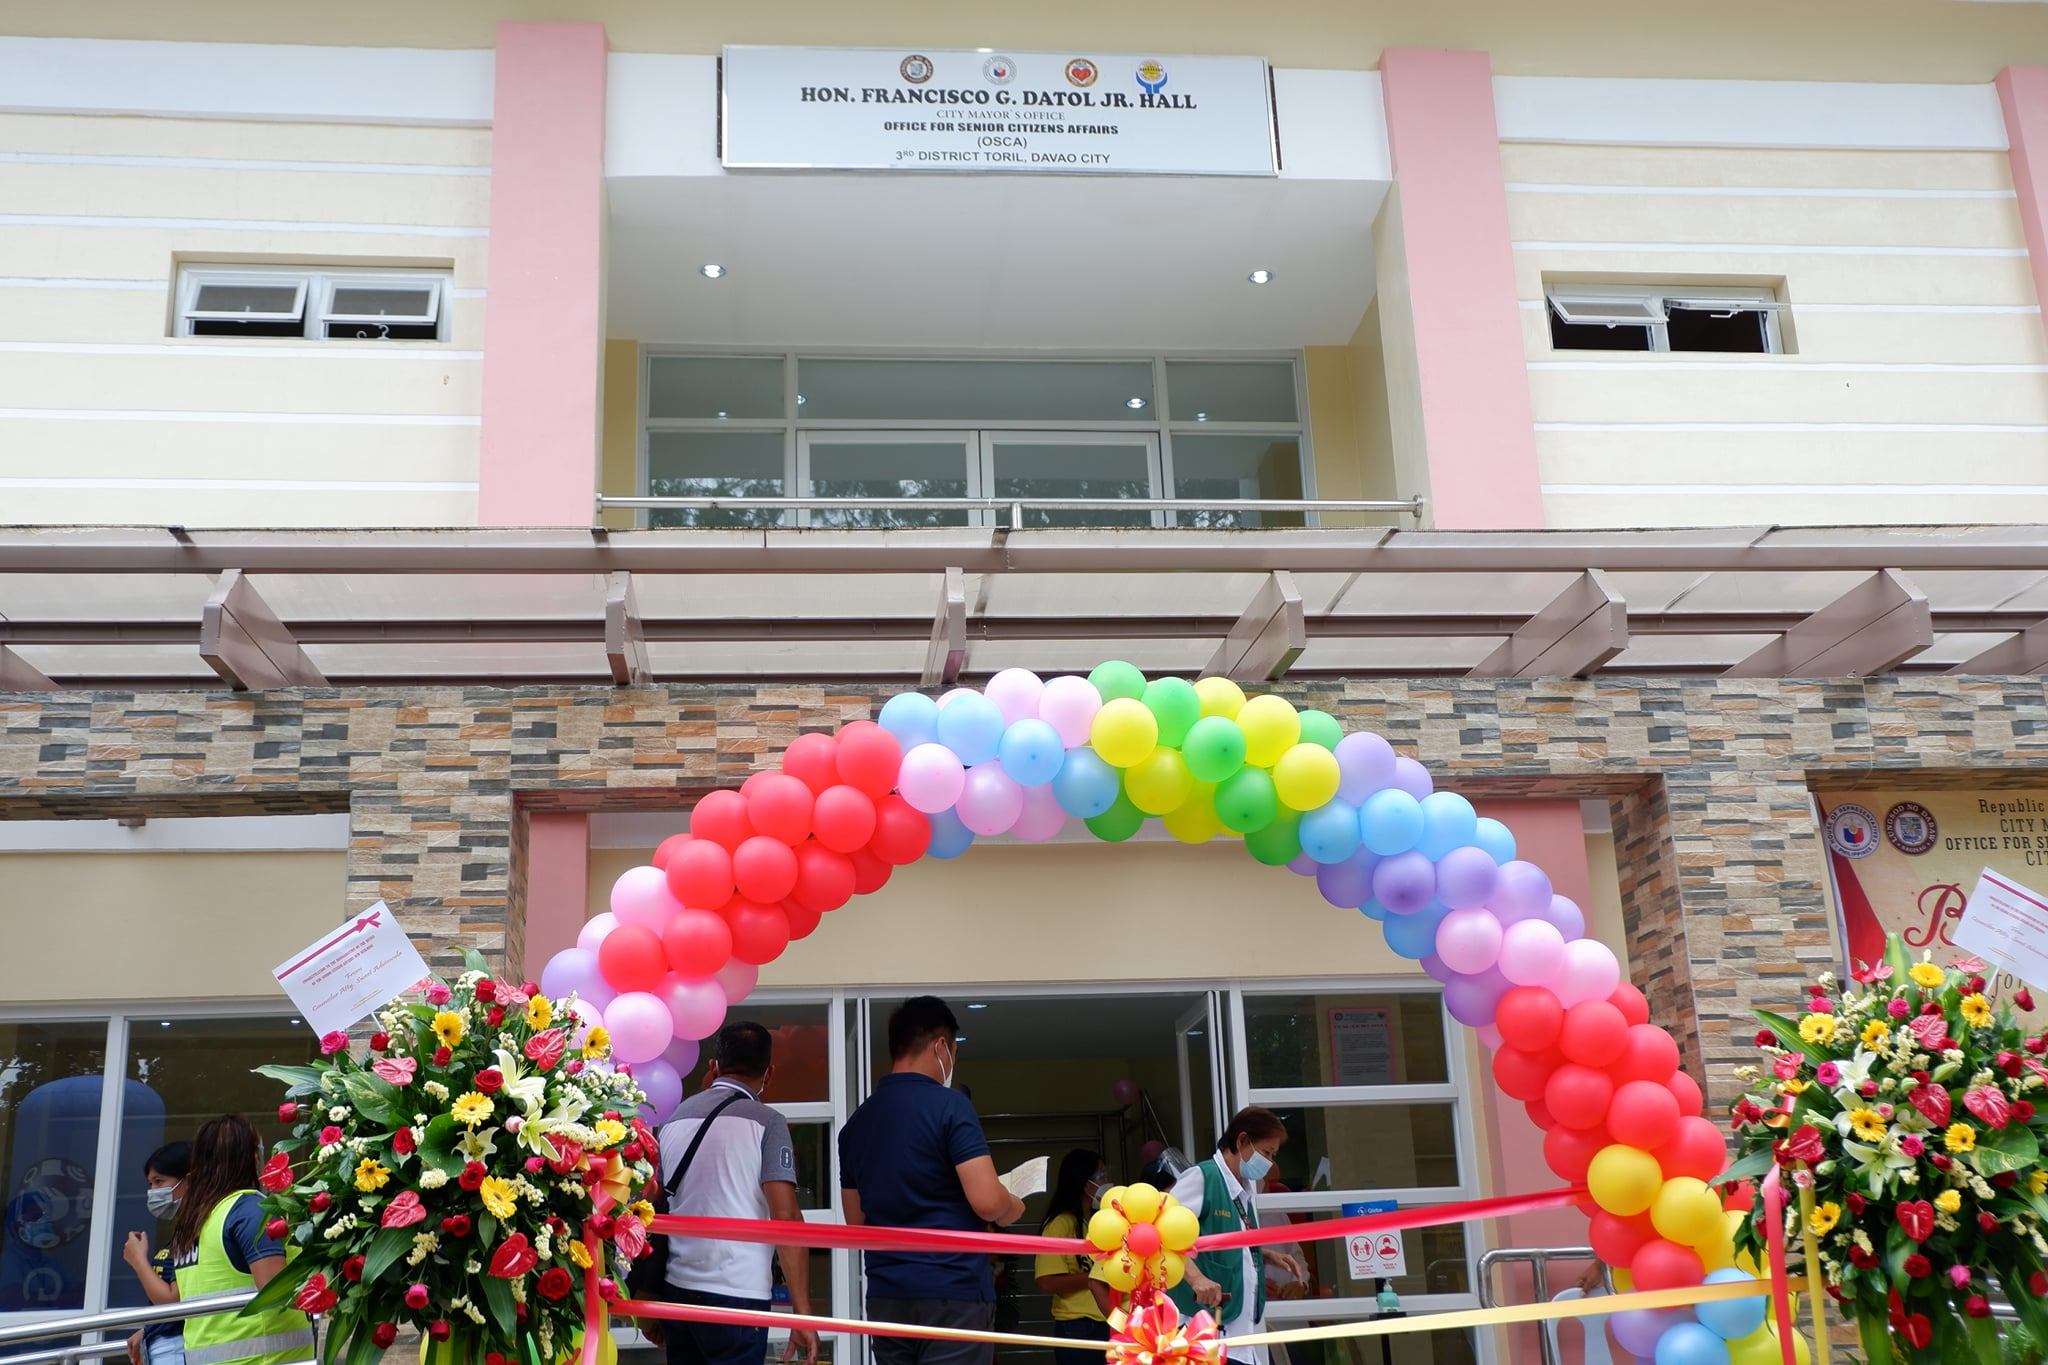 BLESSING & CUTTING OF RIBBON CEREMONY CONG. FRANCISCO G. DATOL JR. HALL